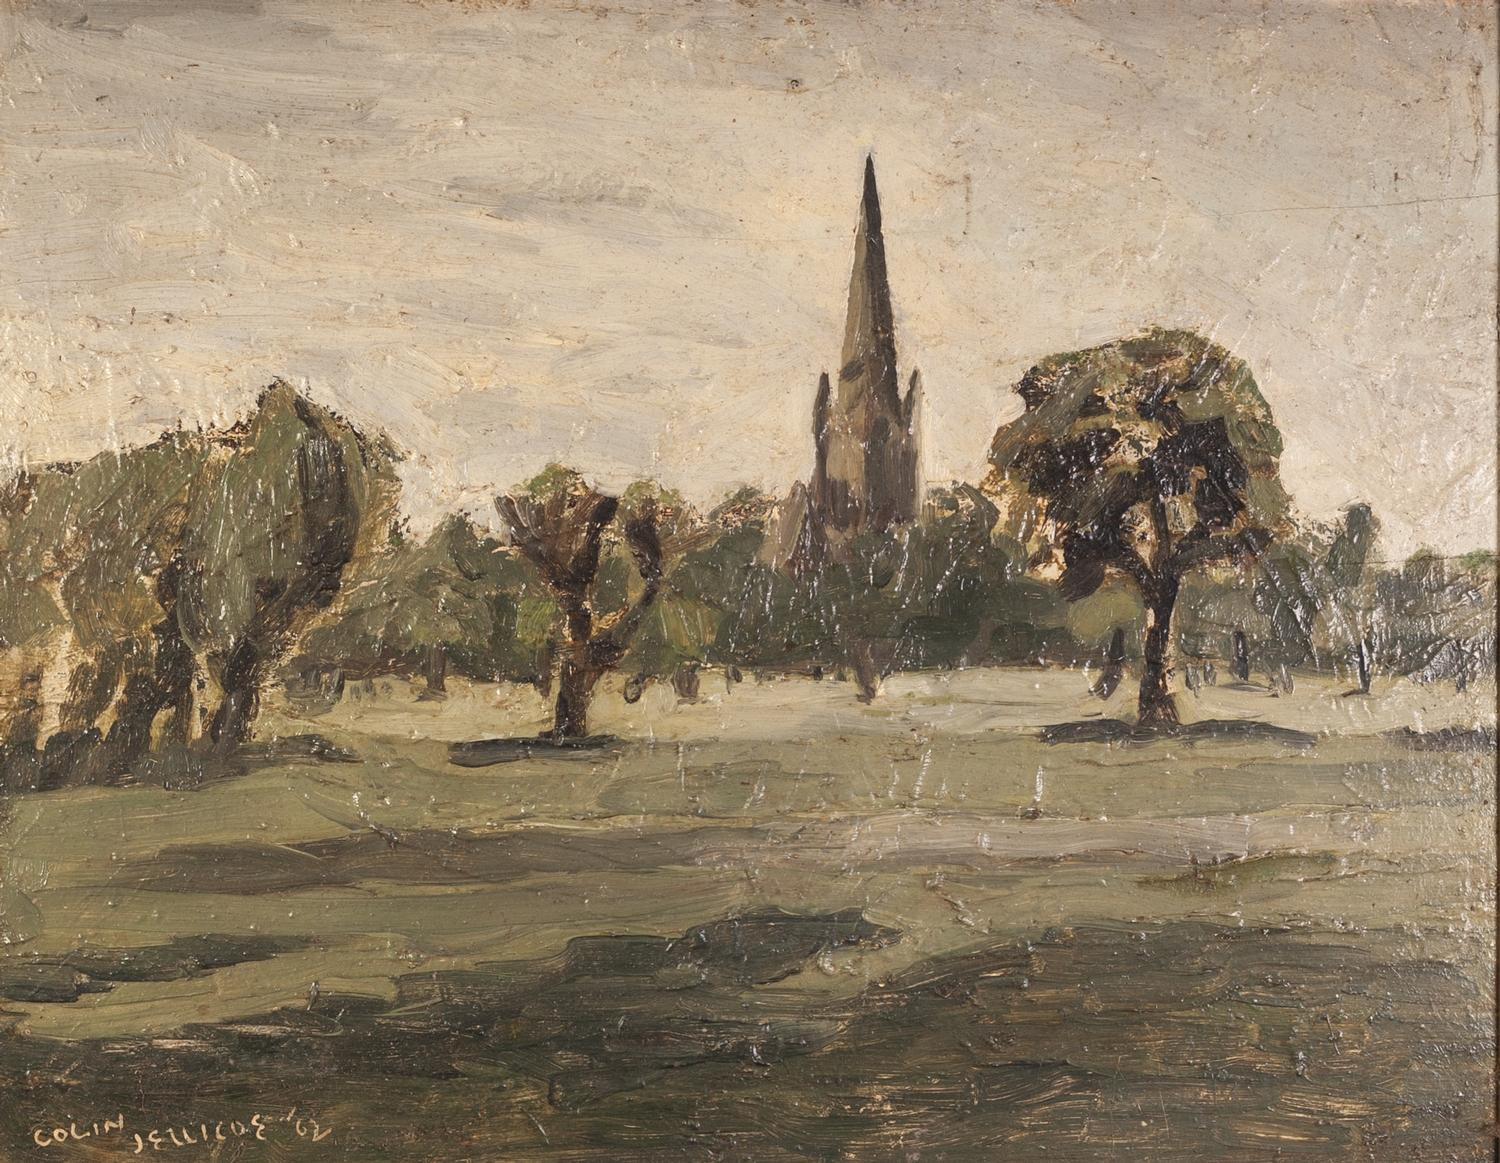 Lot 79 - COLIN JELLICOE (1942-2018) OIL ON BOARD ?Platt Fields, Manchester? Signed and dated (19)92 18 ½? x